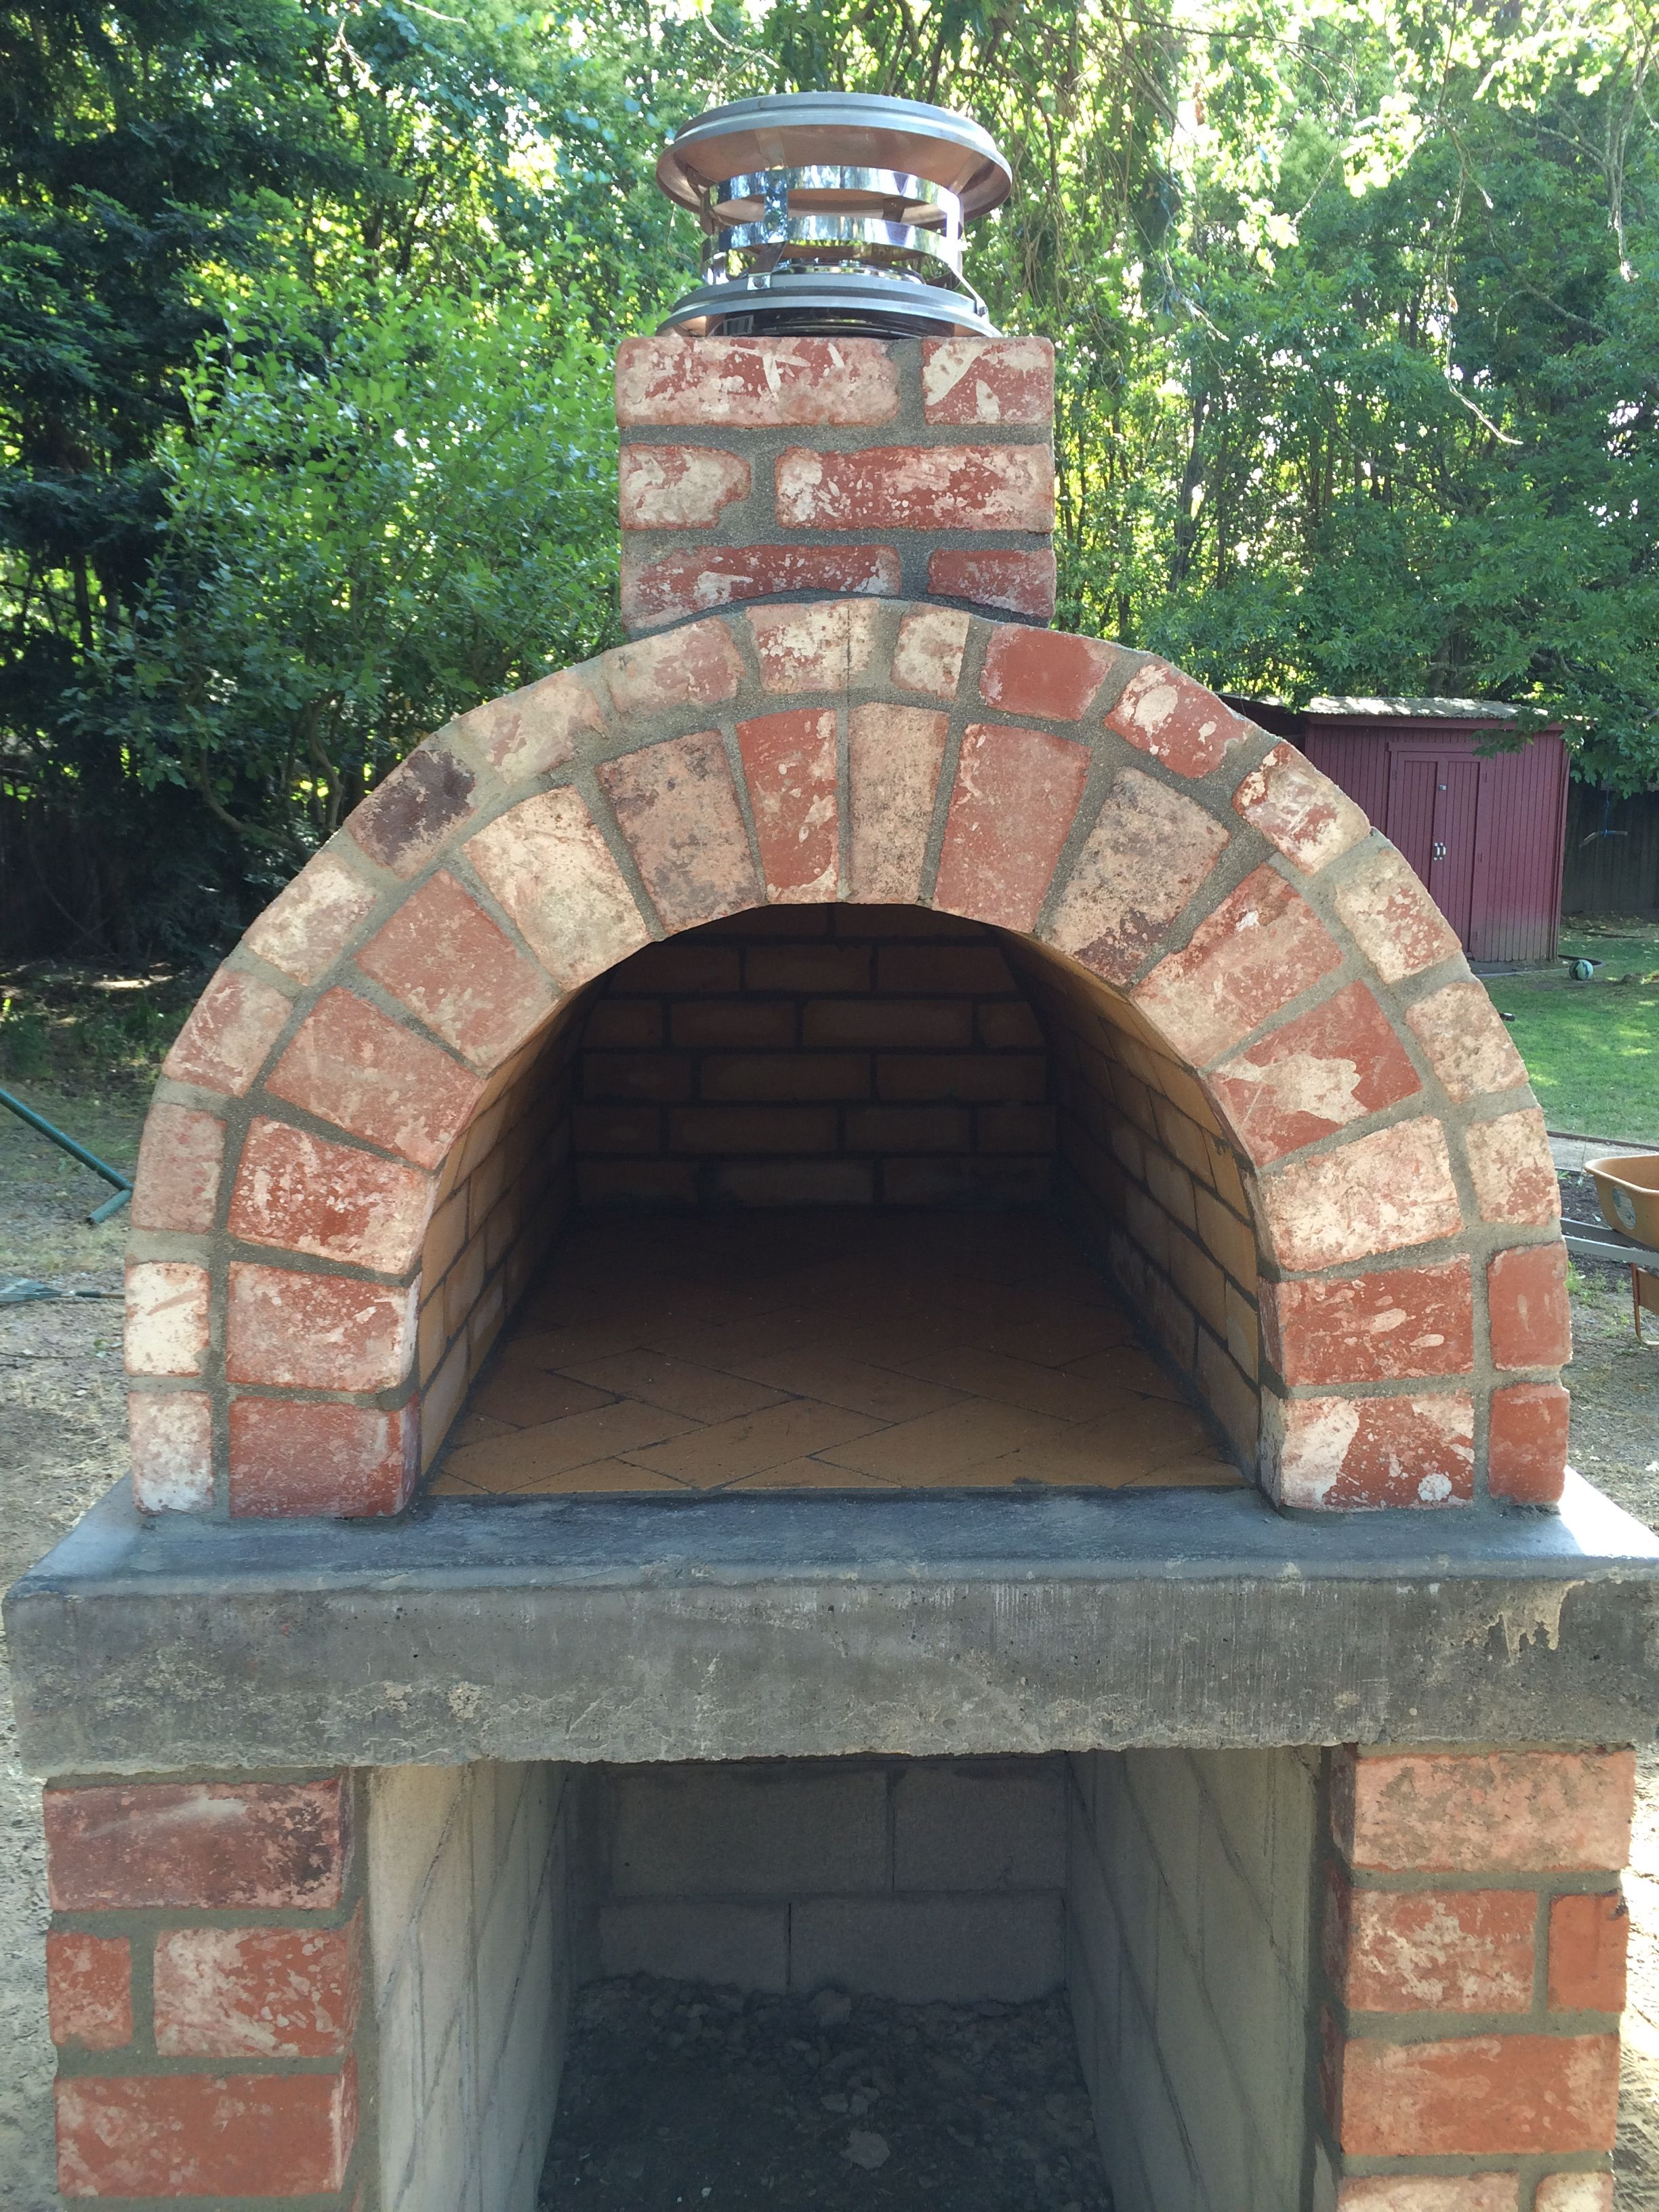 a classic brick wood oven an excellent example of a wood fired